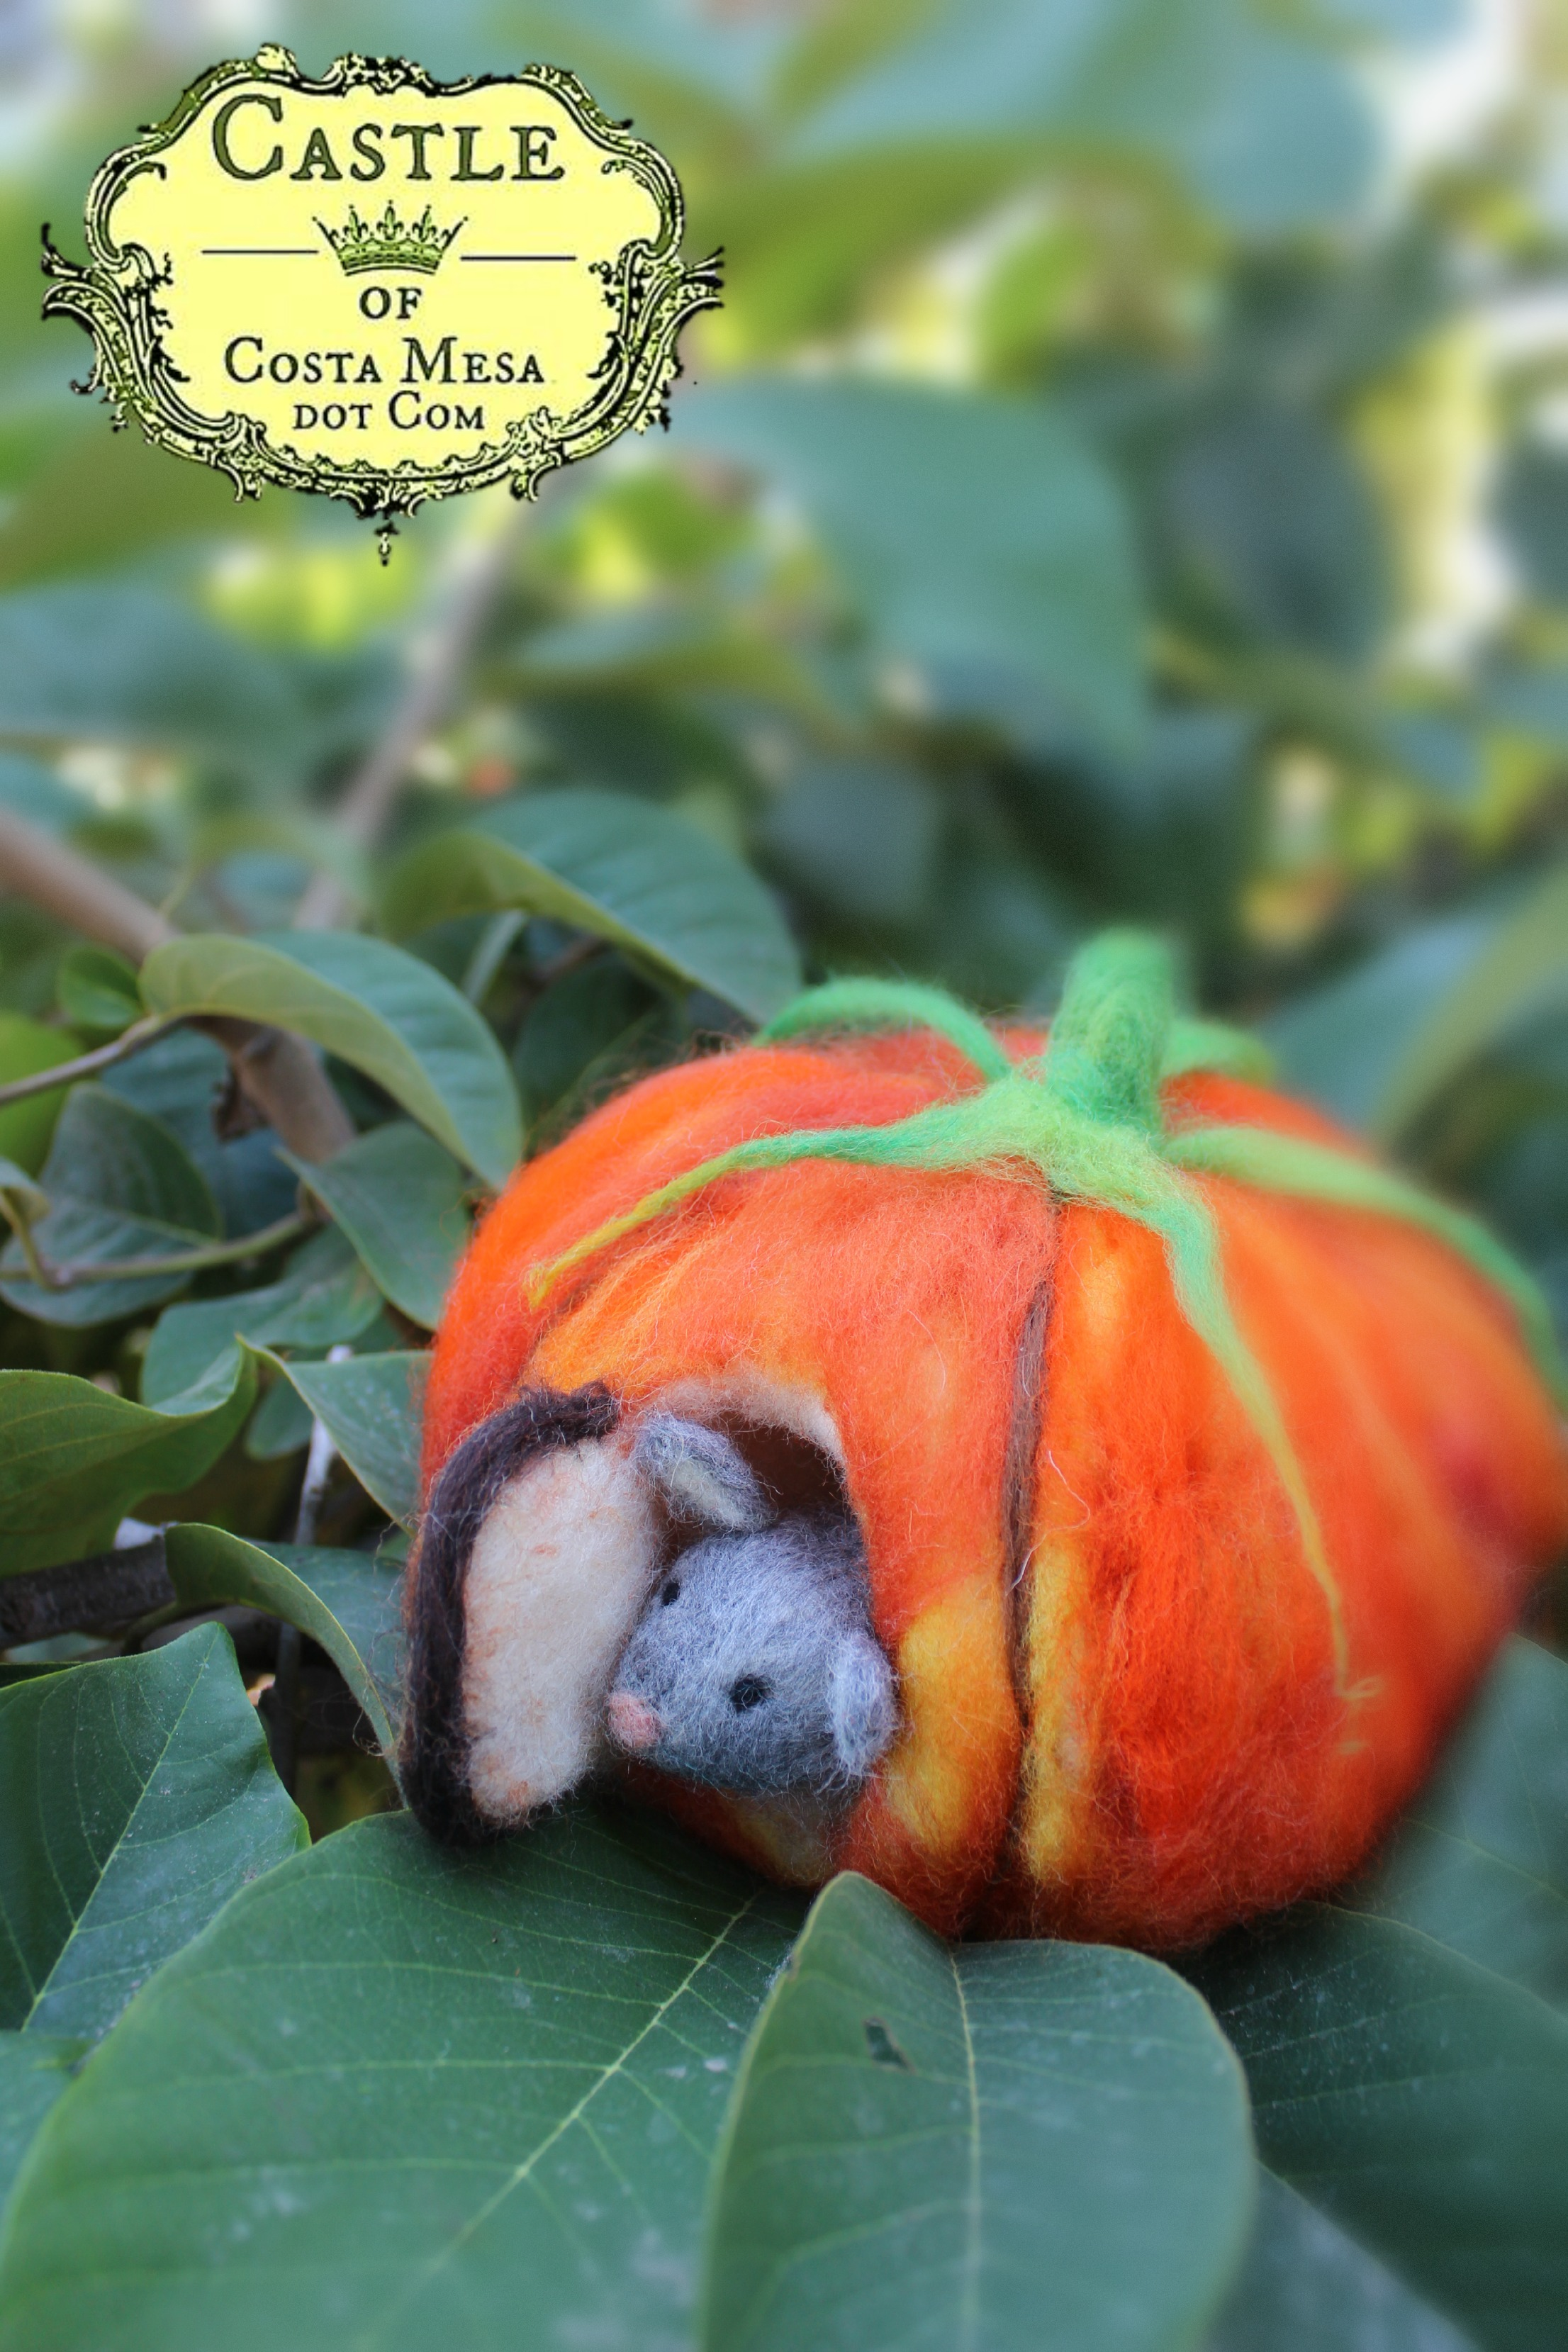 131015 Josephine's needle-felted mouse peering out the door of his orange pumpkin house front door on foggy morning